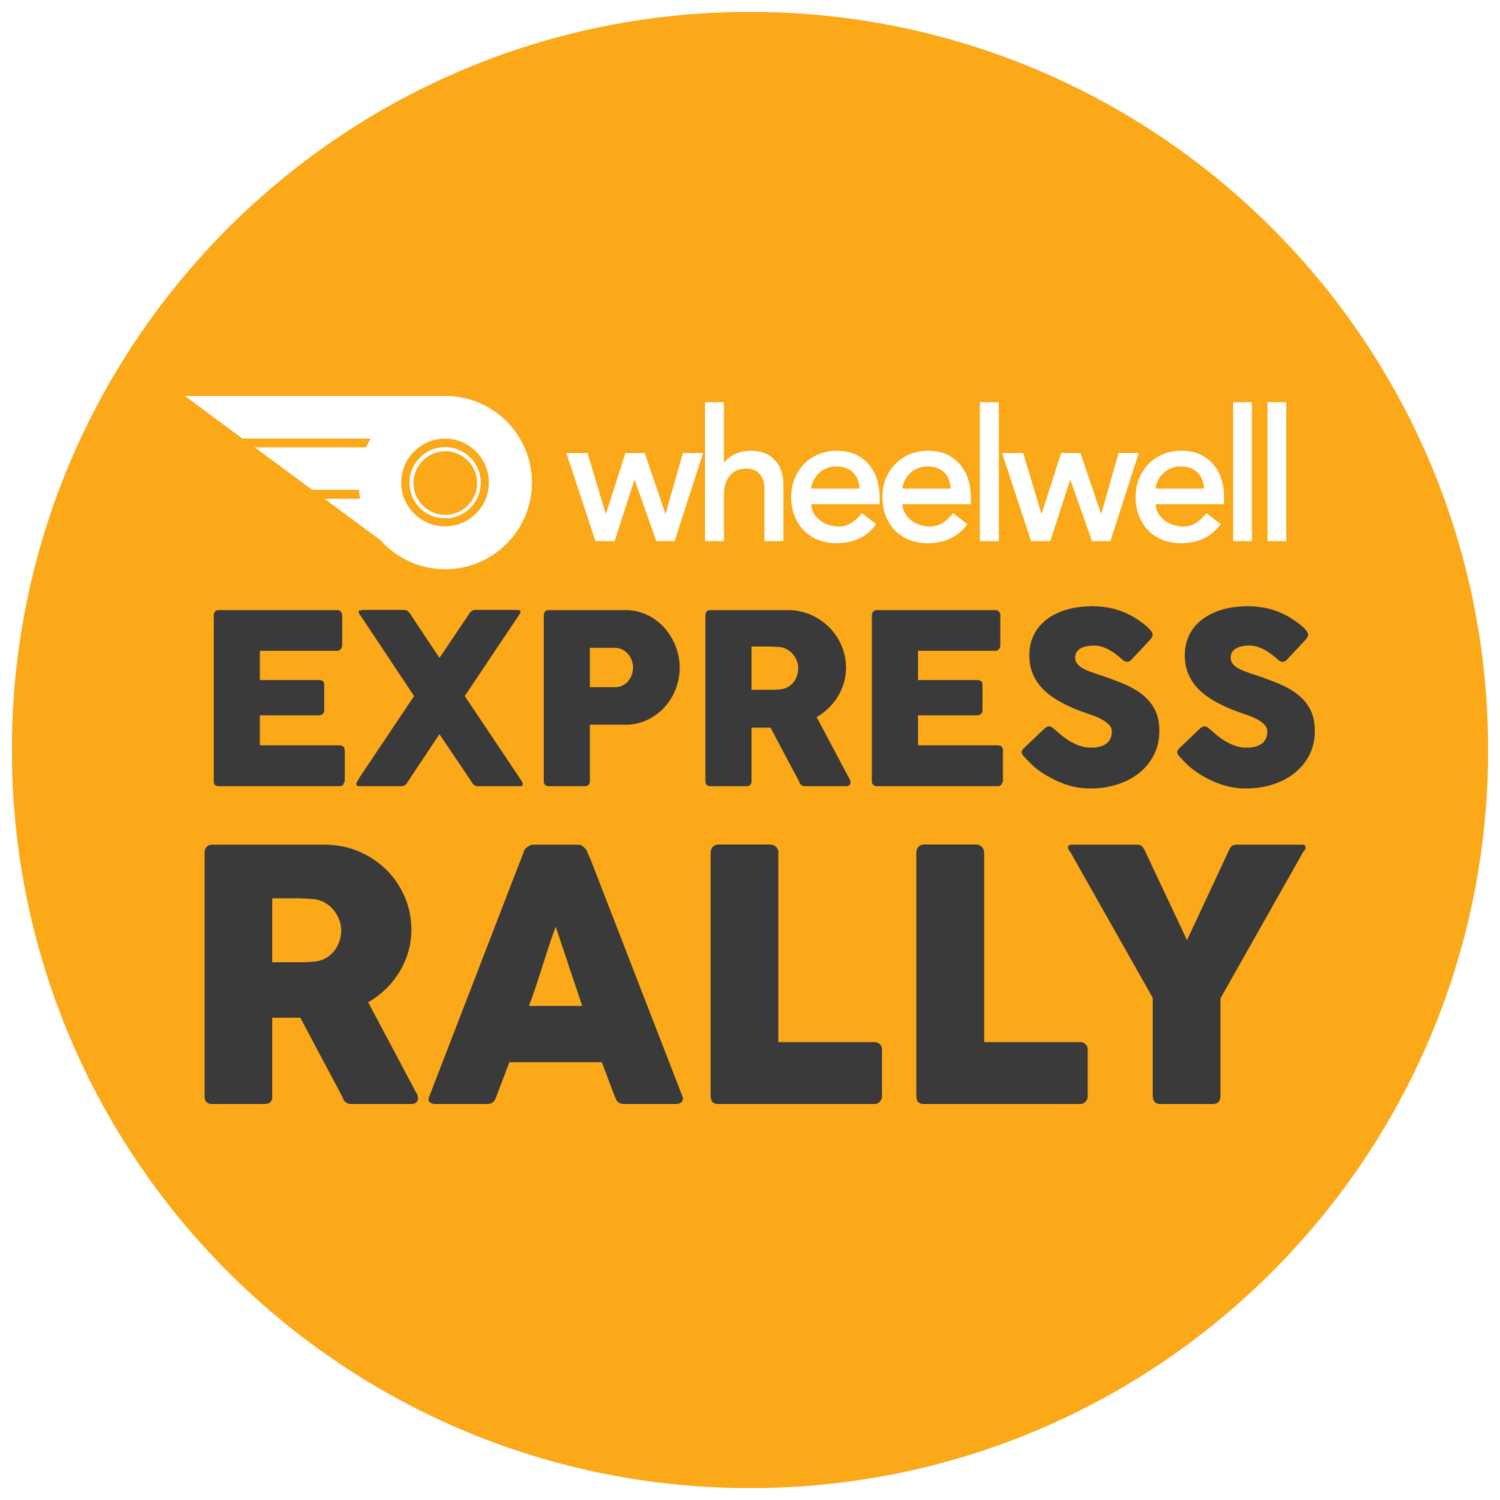 Express Rally